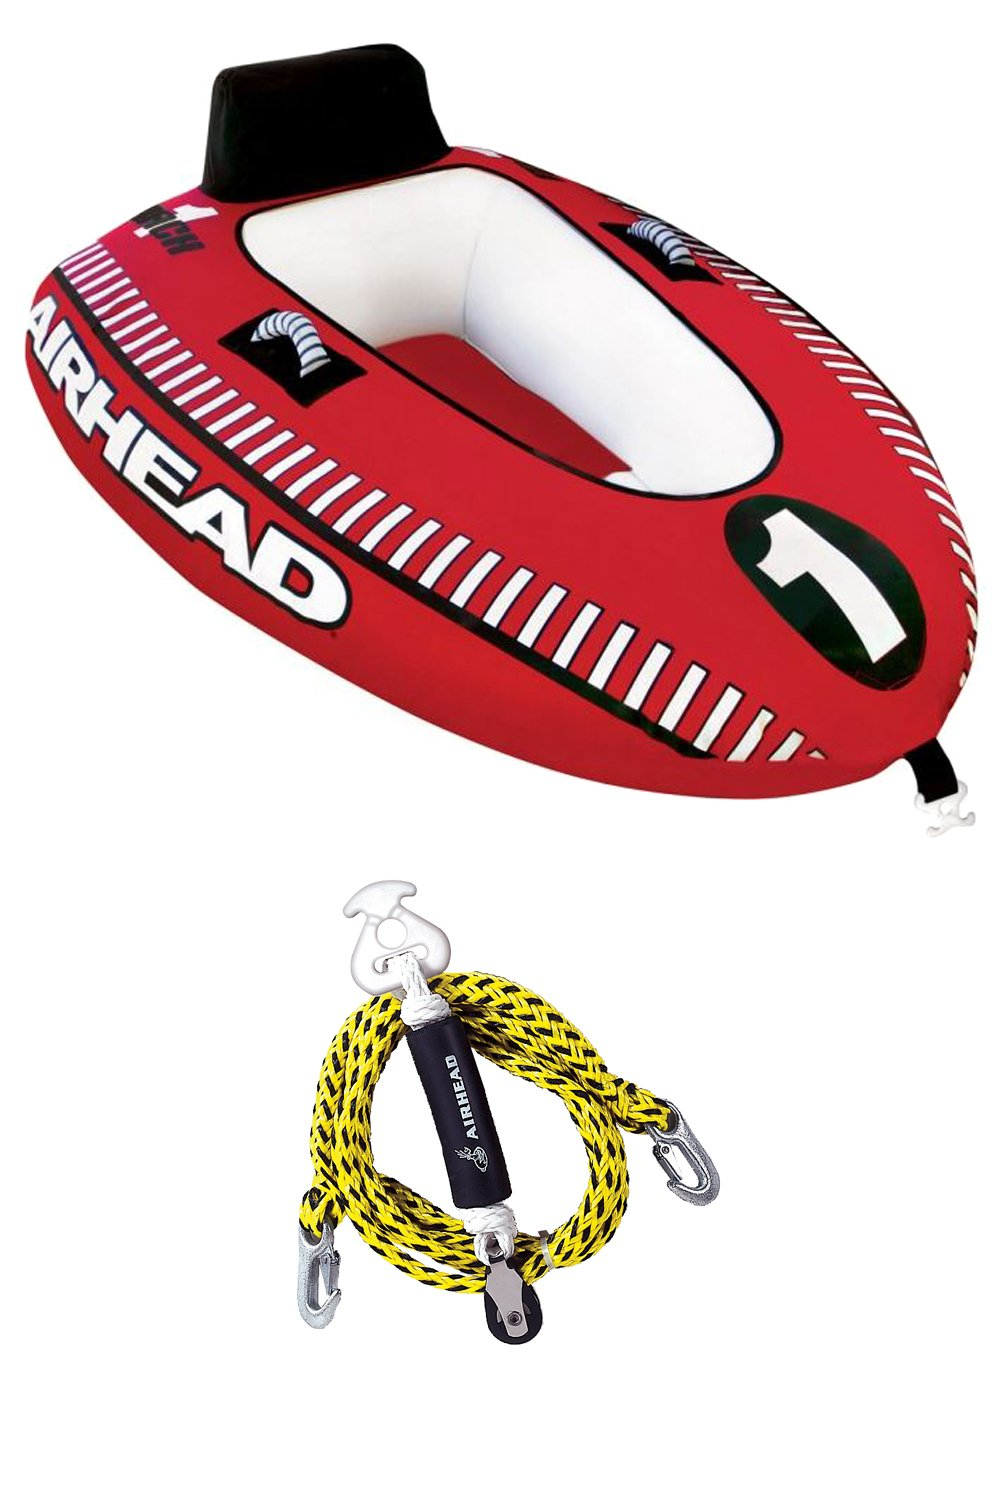 Amazon.com: Airhead Mach 1 Single Rider Inflatable Boat Towable Tube + Tow  Harness | AHM1-1: Cell Phones & Accessories